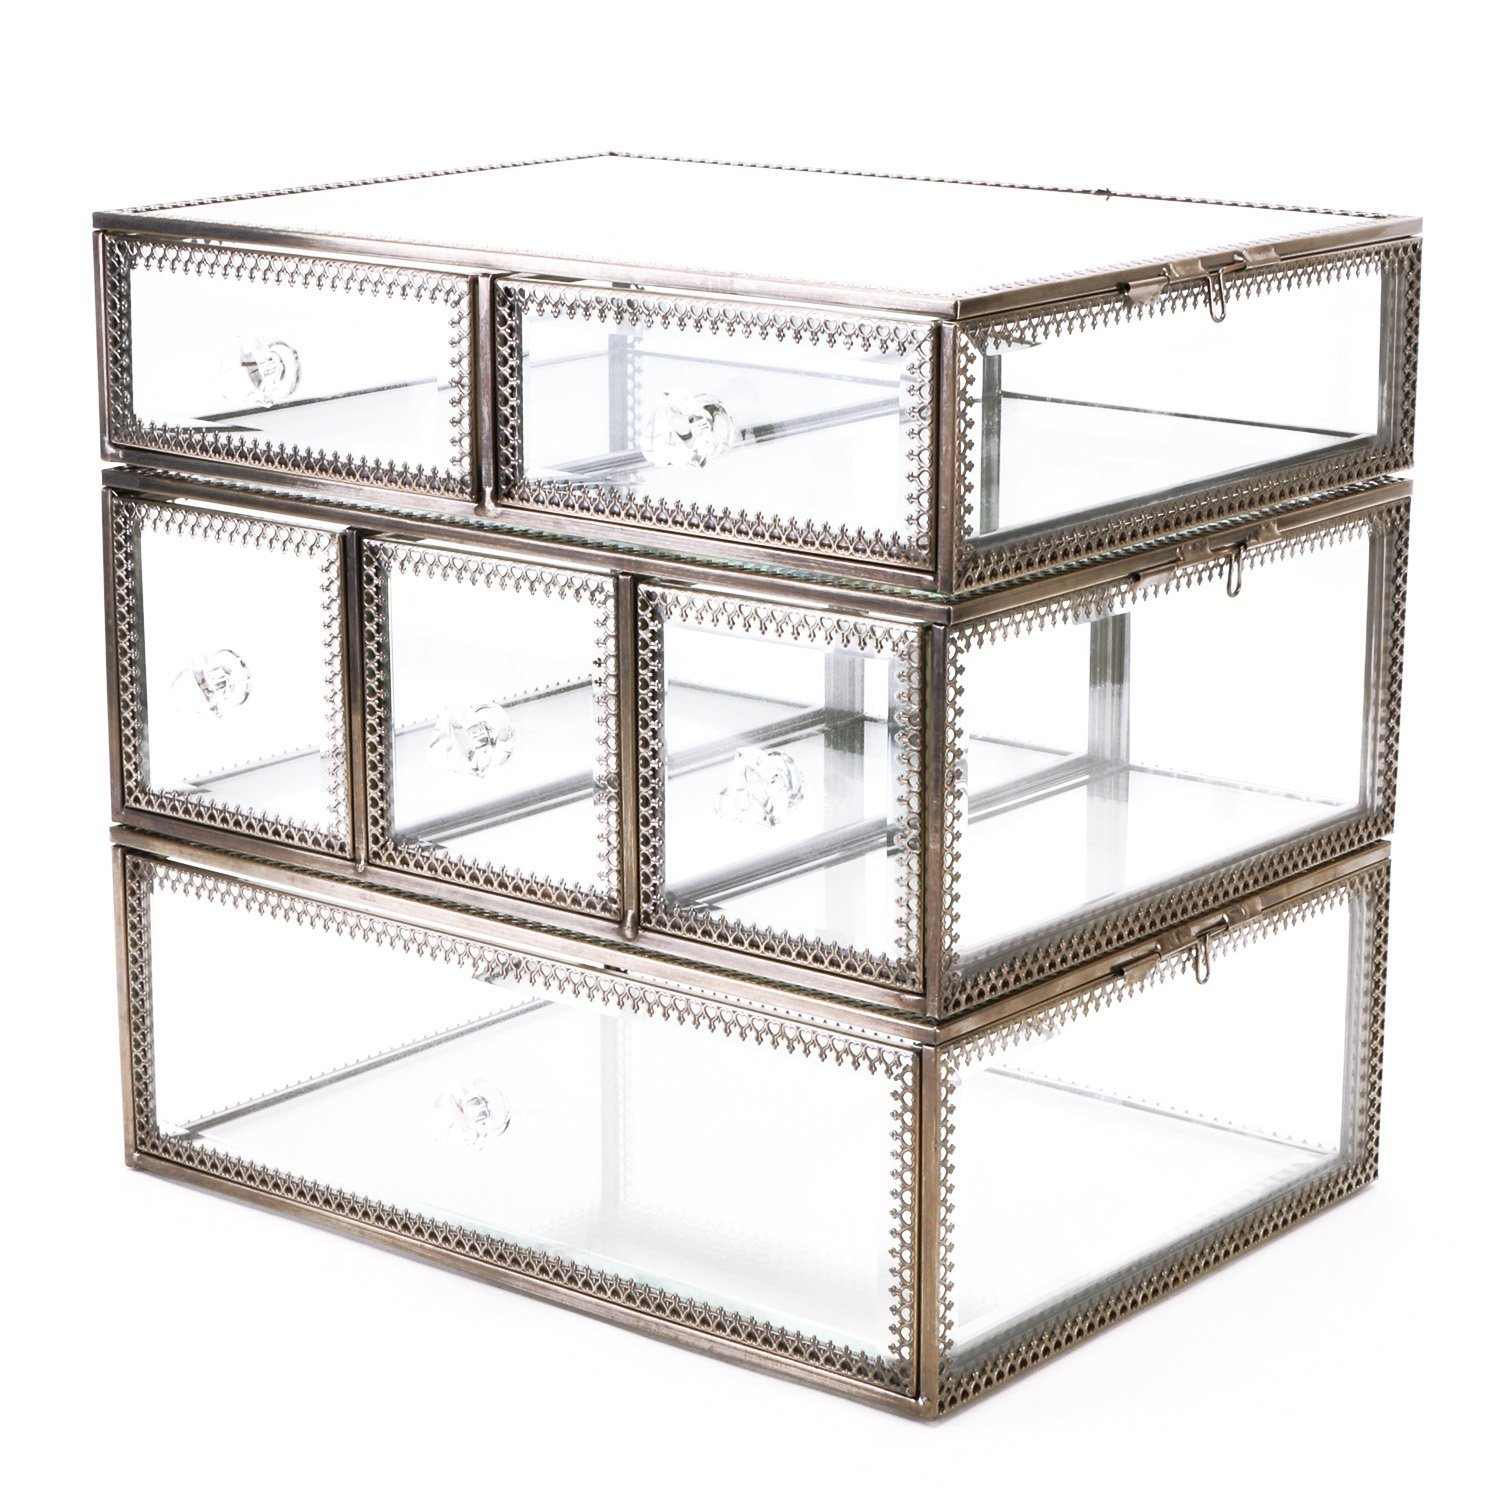 Hersoo Large Antique Mirror Glass Makeup Organizer Jewelry &Cosmetic Display, Stackable Dresser Storage For Vanity With Lid Dustproof Beauty Accent Home Decorative Box (Drawerset Br) by Hersoo